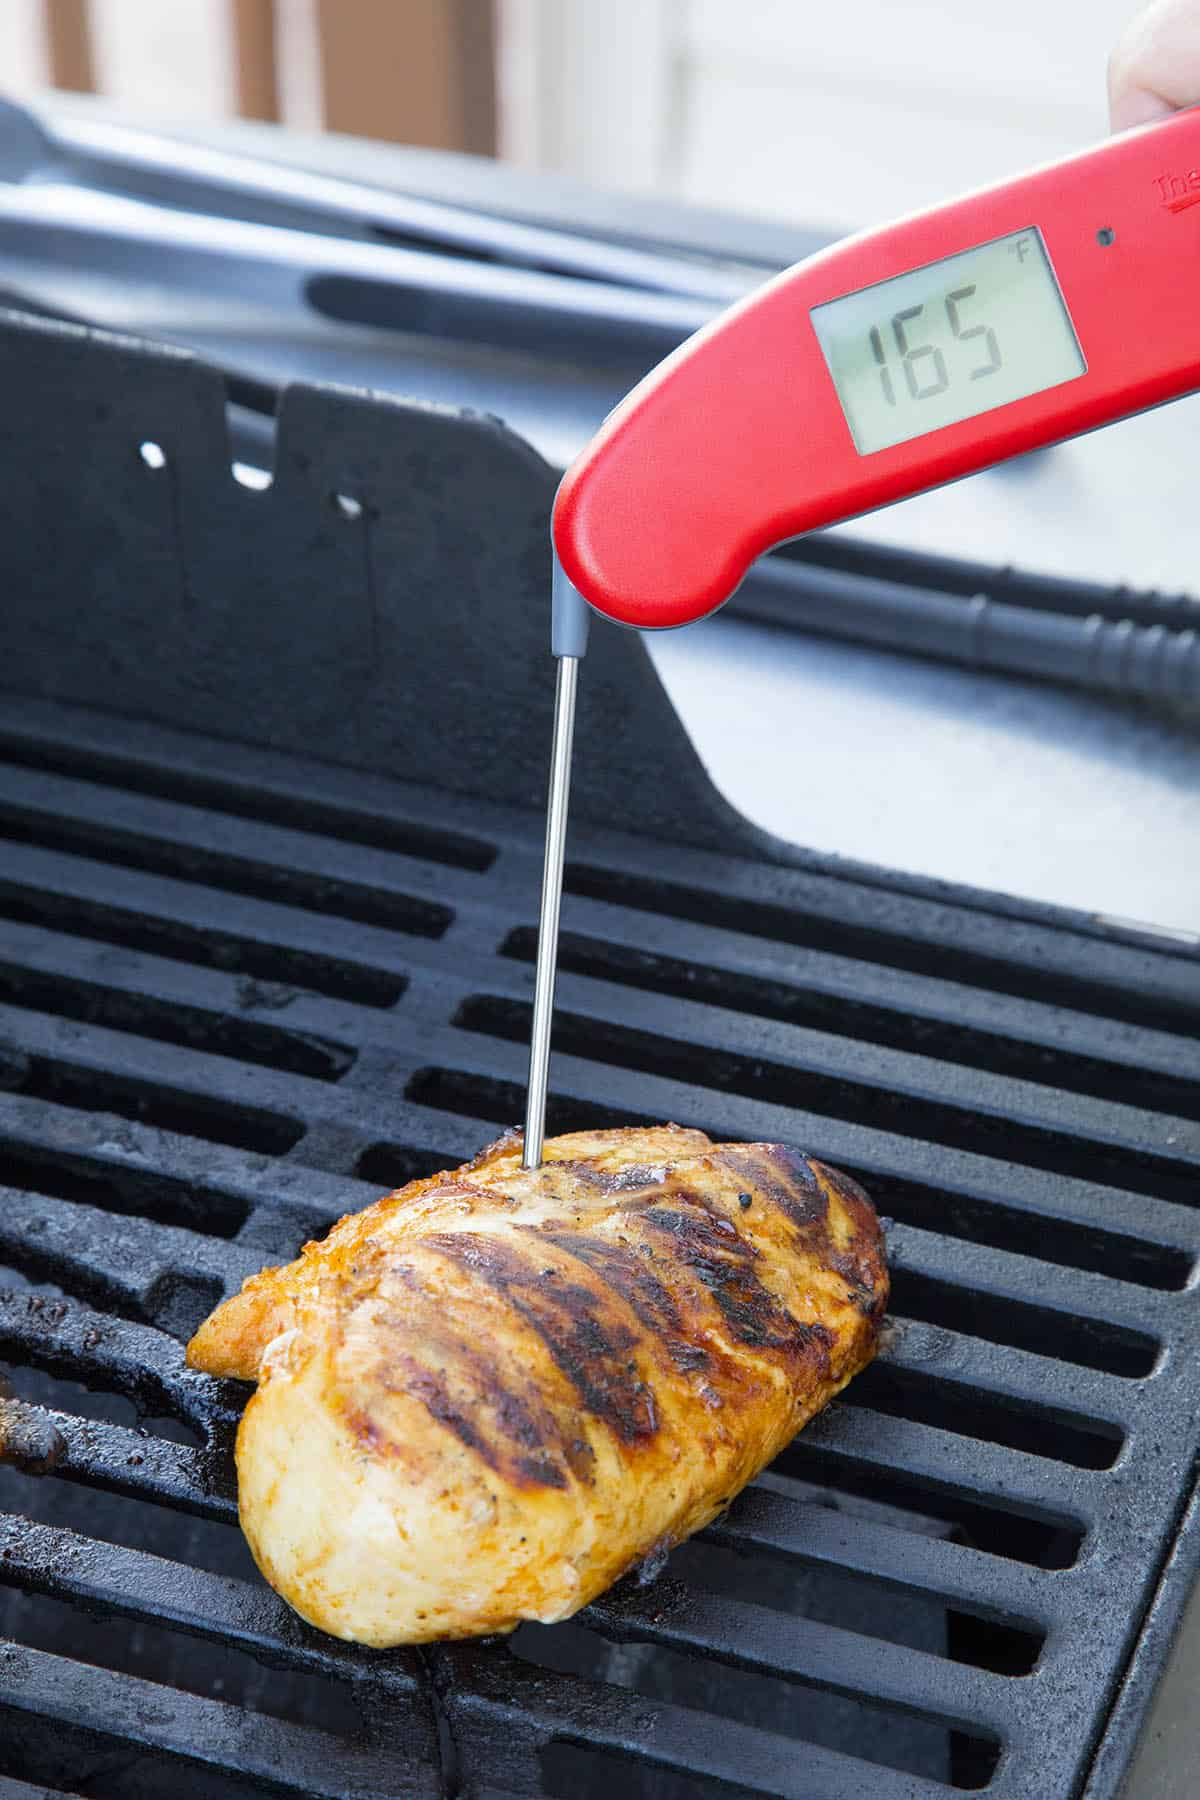 Testing the internal temperature of my grilled chicken